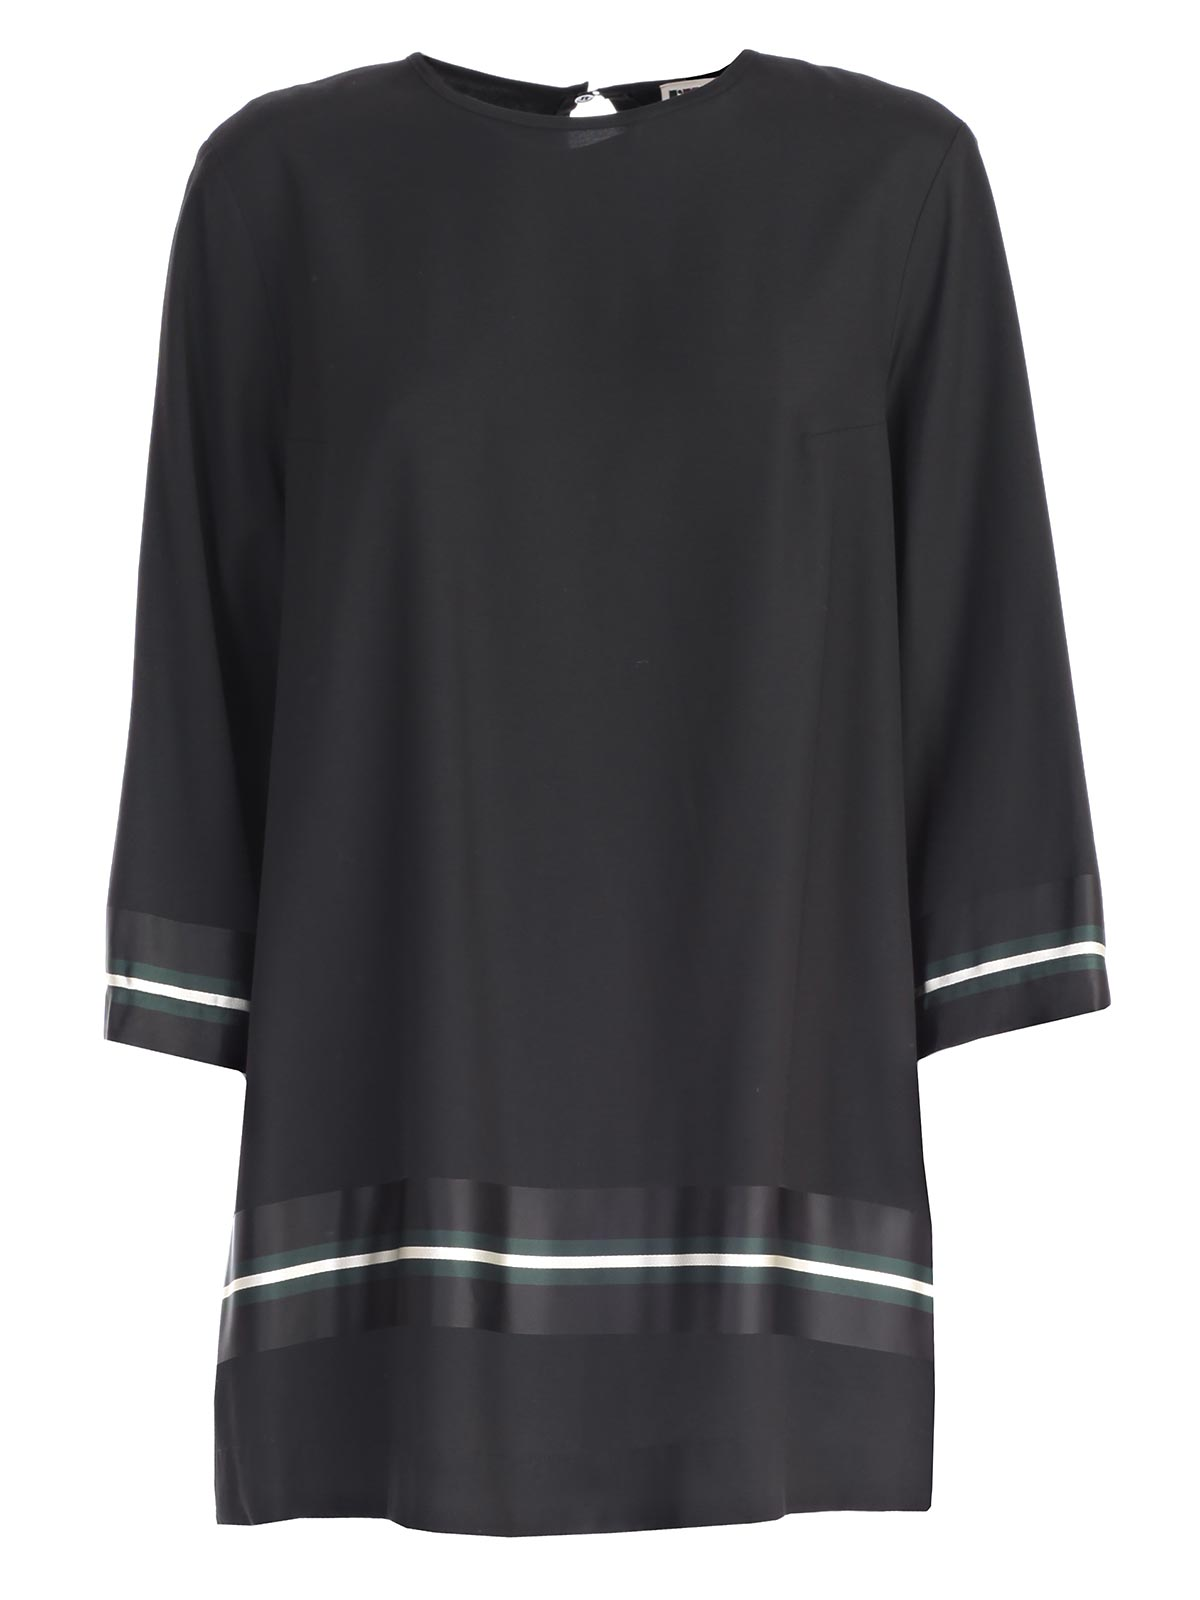 Picture of I'M ISOLA MARRAS SHIRTS